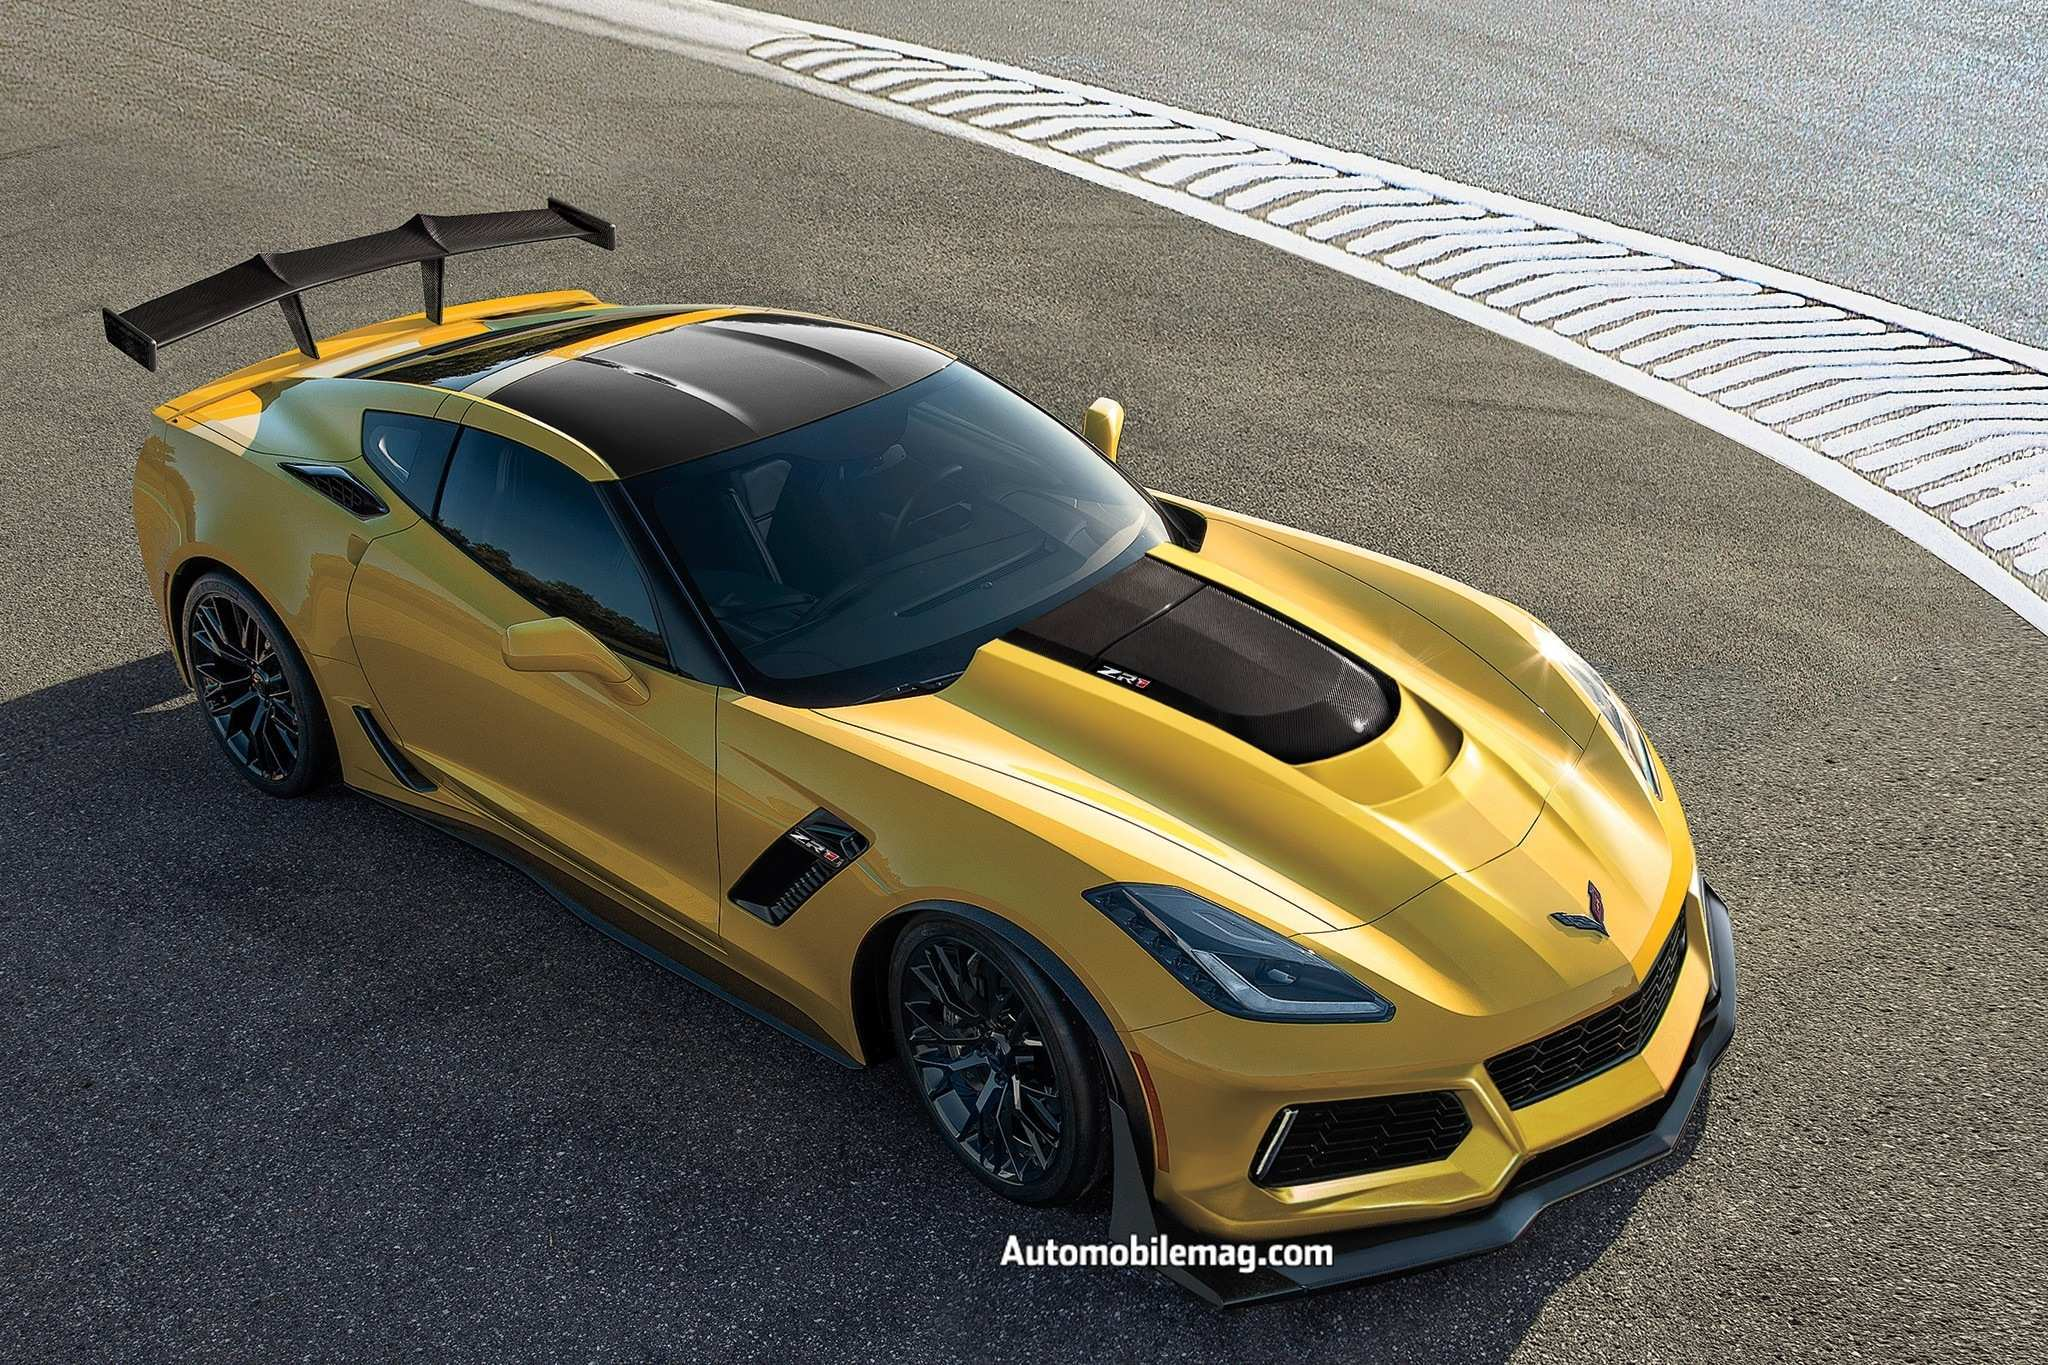 40 Gallery of New Chevrolet Corvette Zr1 2019 Spy Shoot Overview by New Chevrolet Corvette Zr1 2019 Spy Shoot